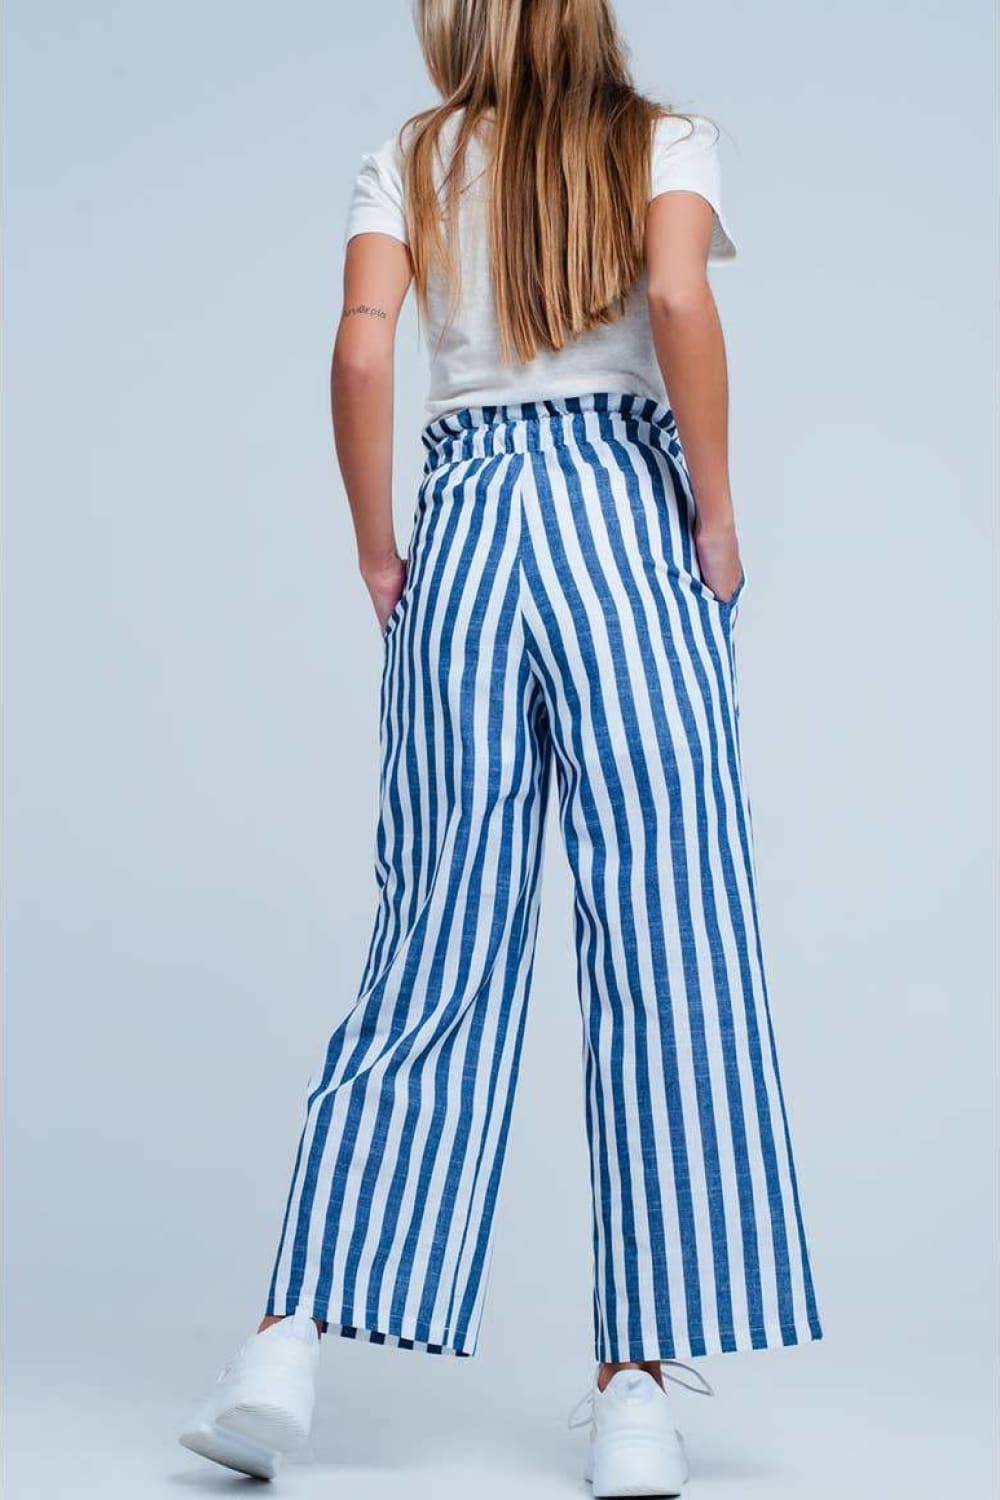 Ava Blue Tapered Pants - Pants - Q2